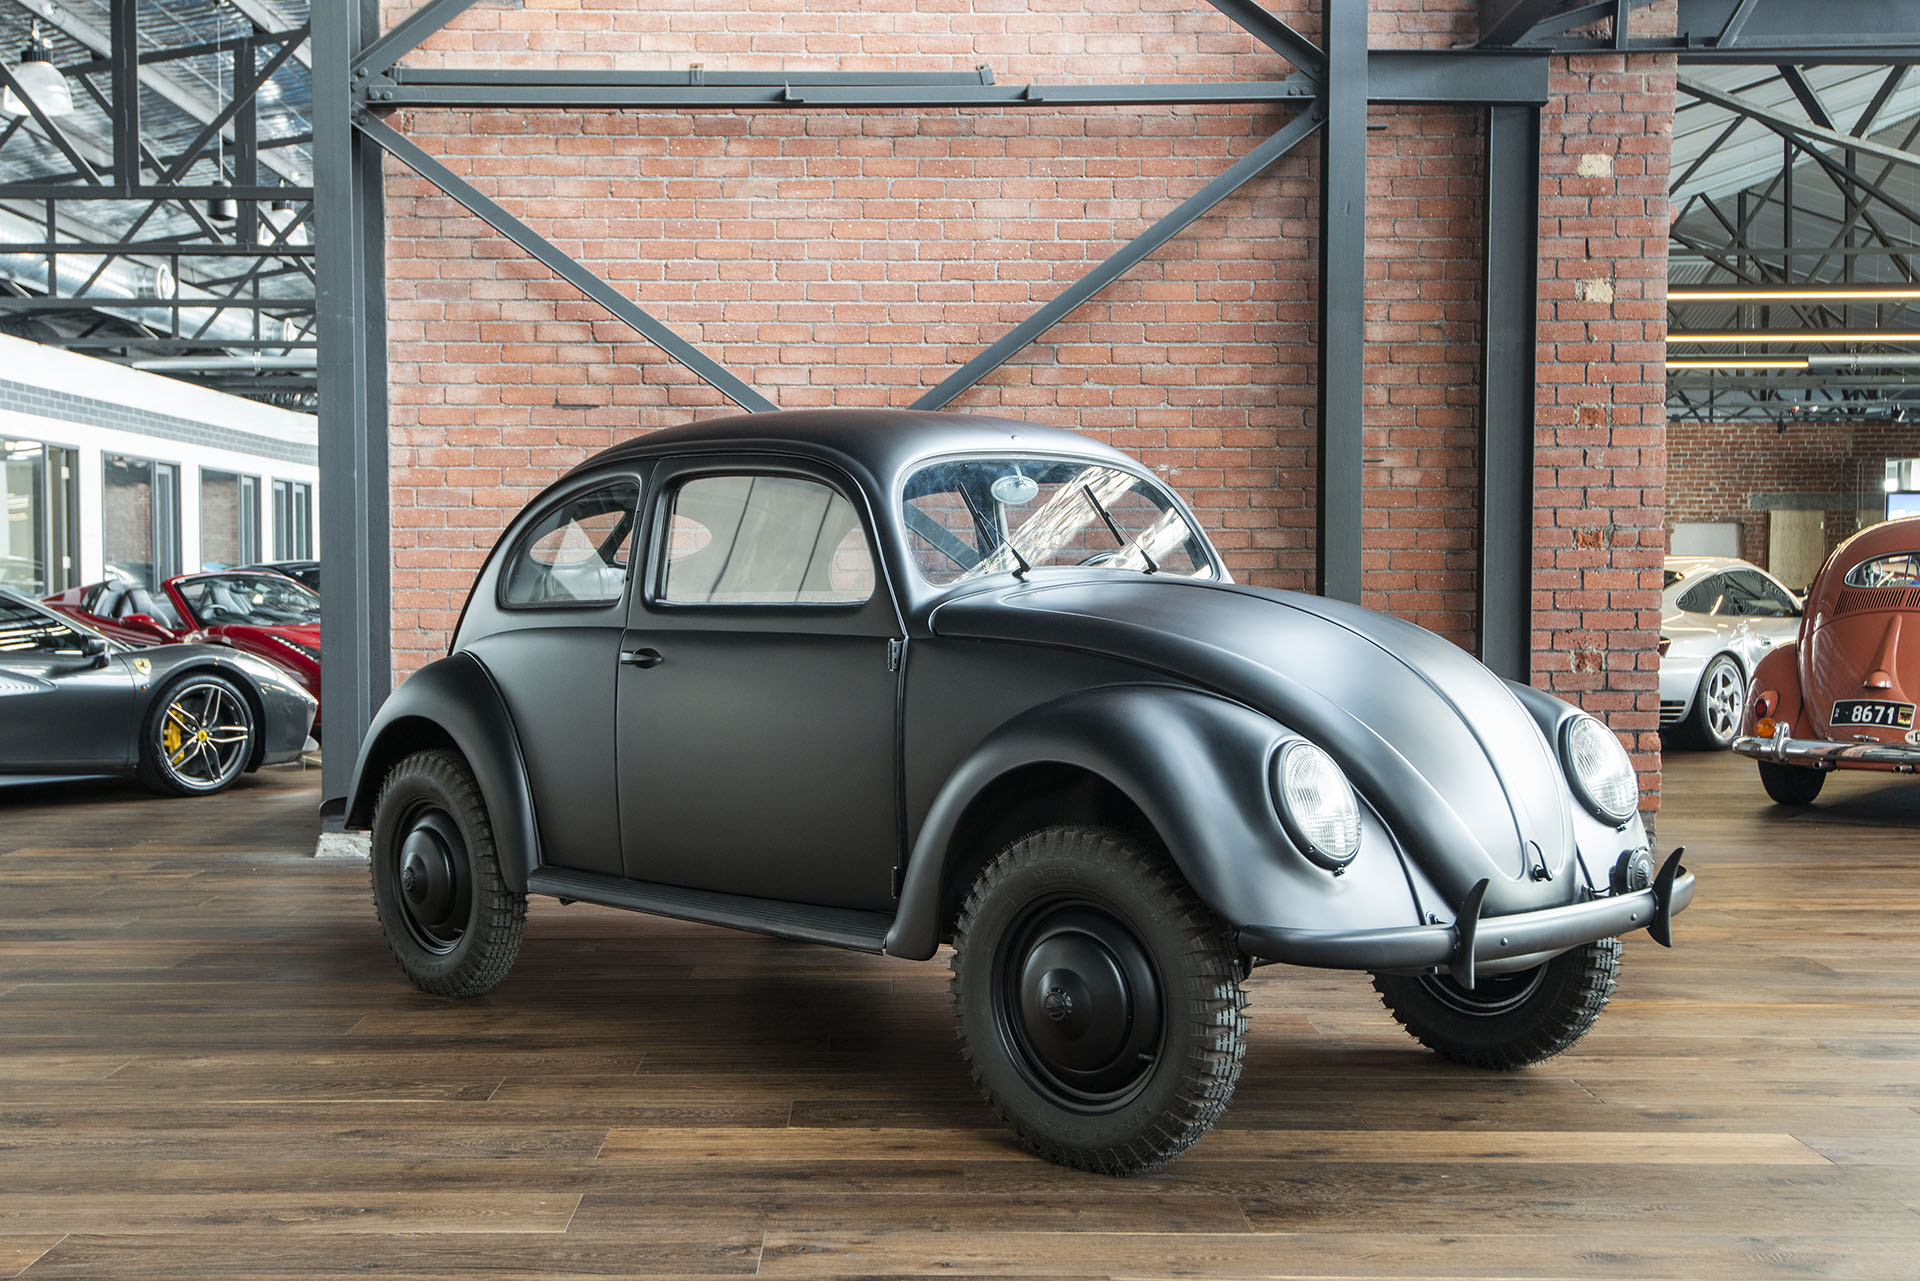 1945 Volkswagen Beetle - Richmonds